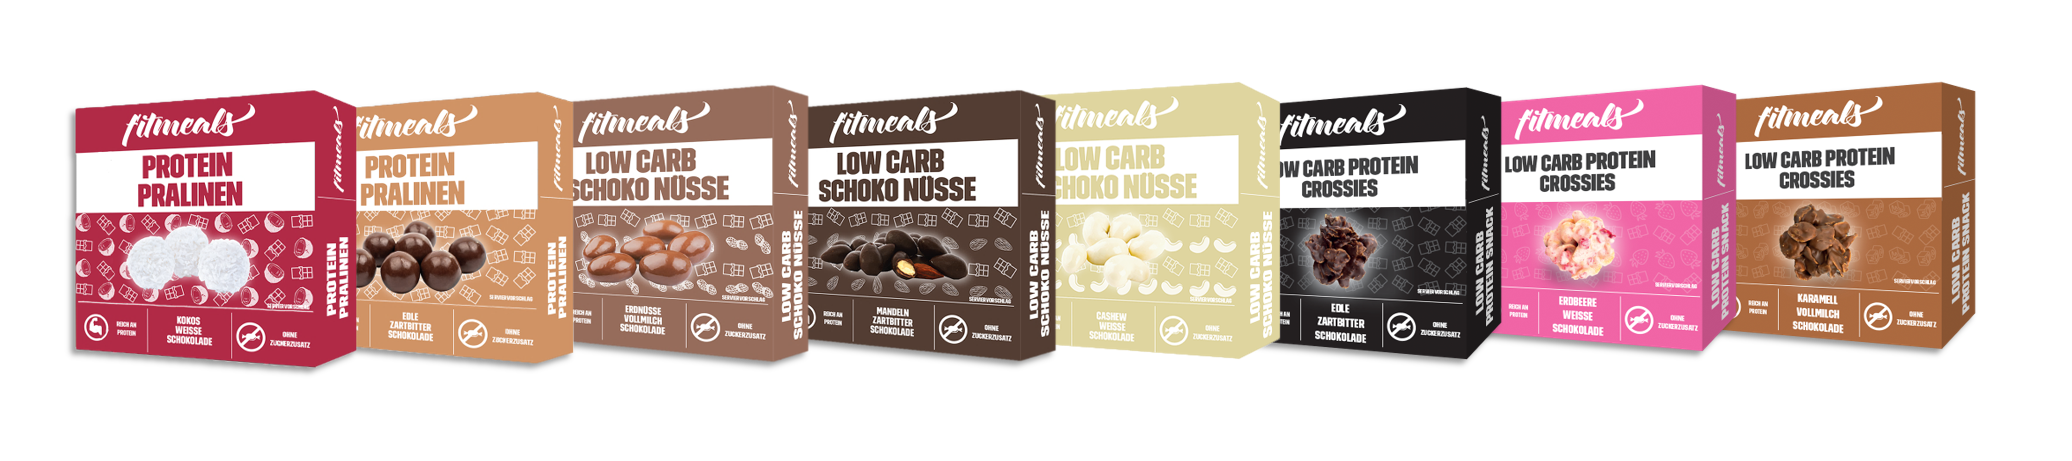 Low-Carb-Snack-Pack5a86faee0bfc6